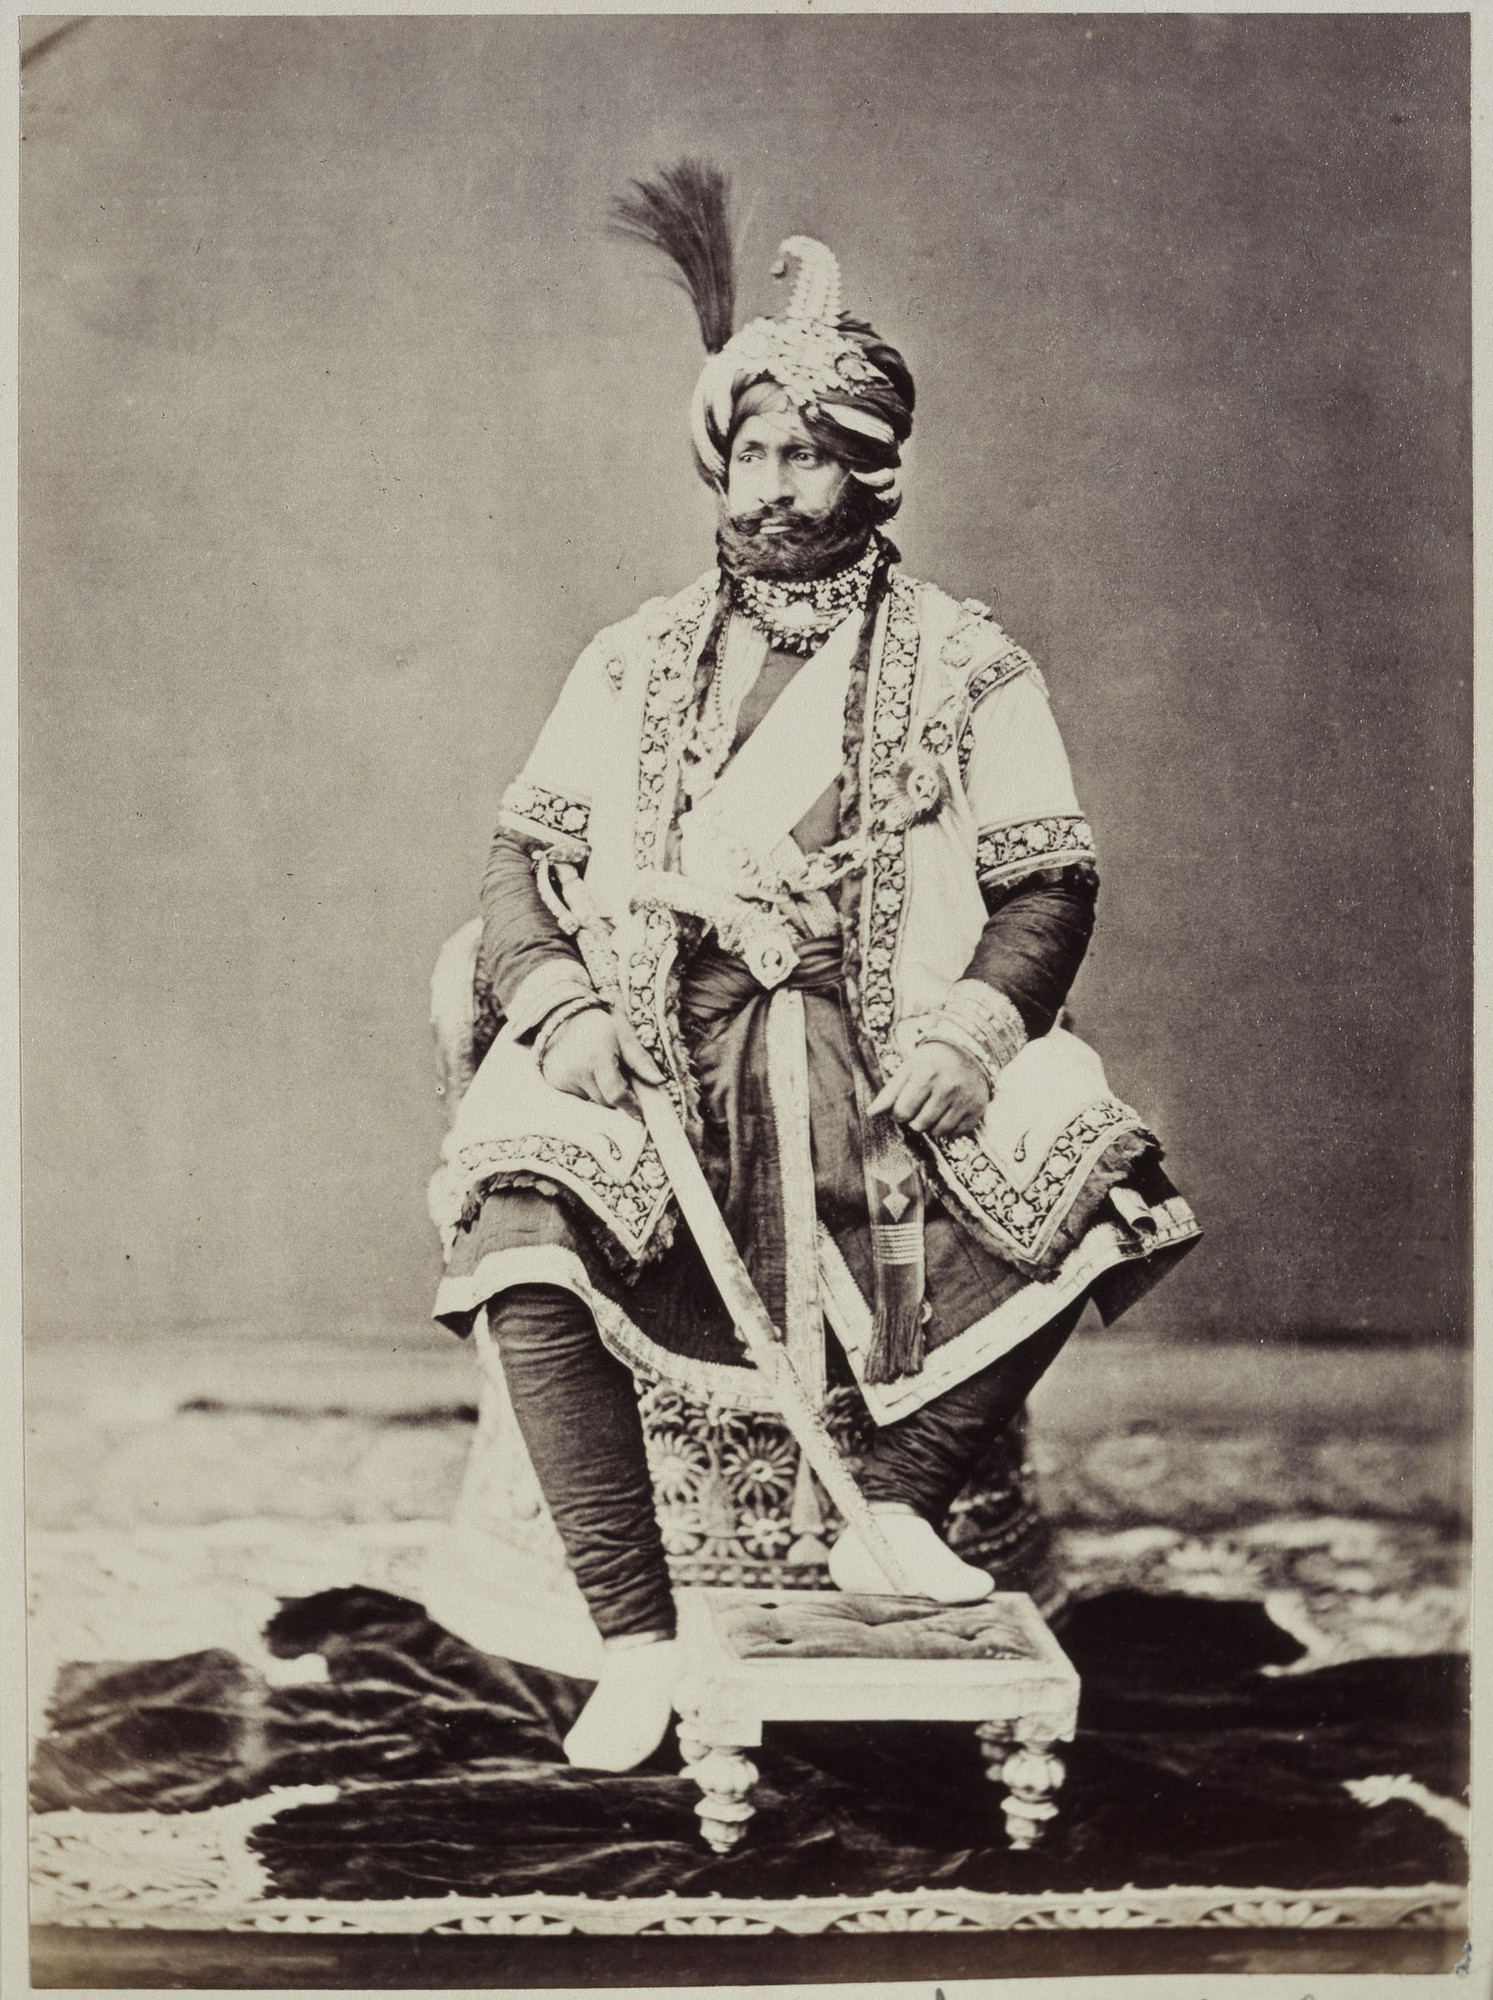 The British agreed to let Gulab Singh become the first Maharaja of Jammu Kashmir.